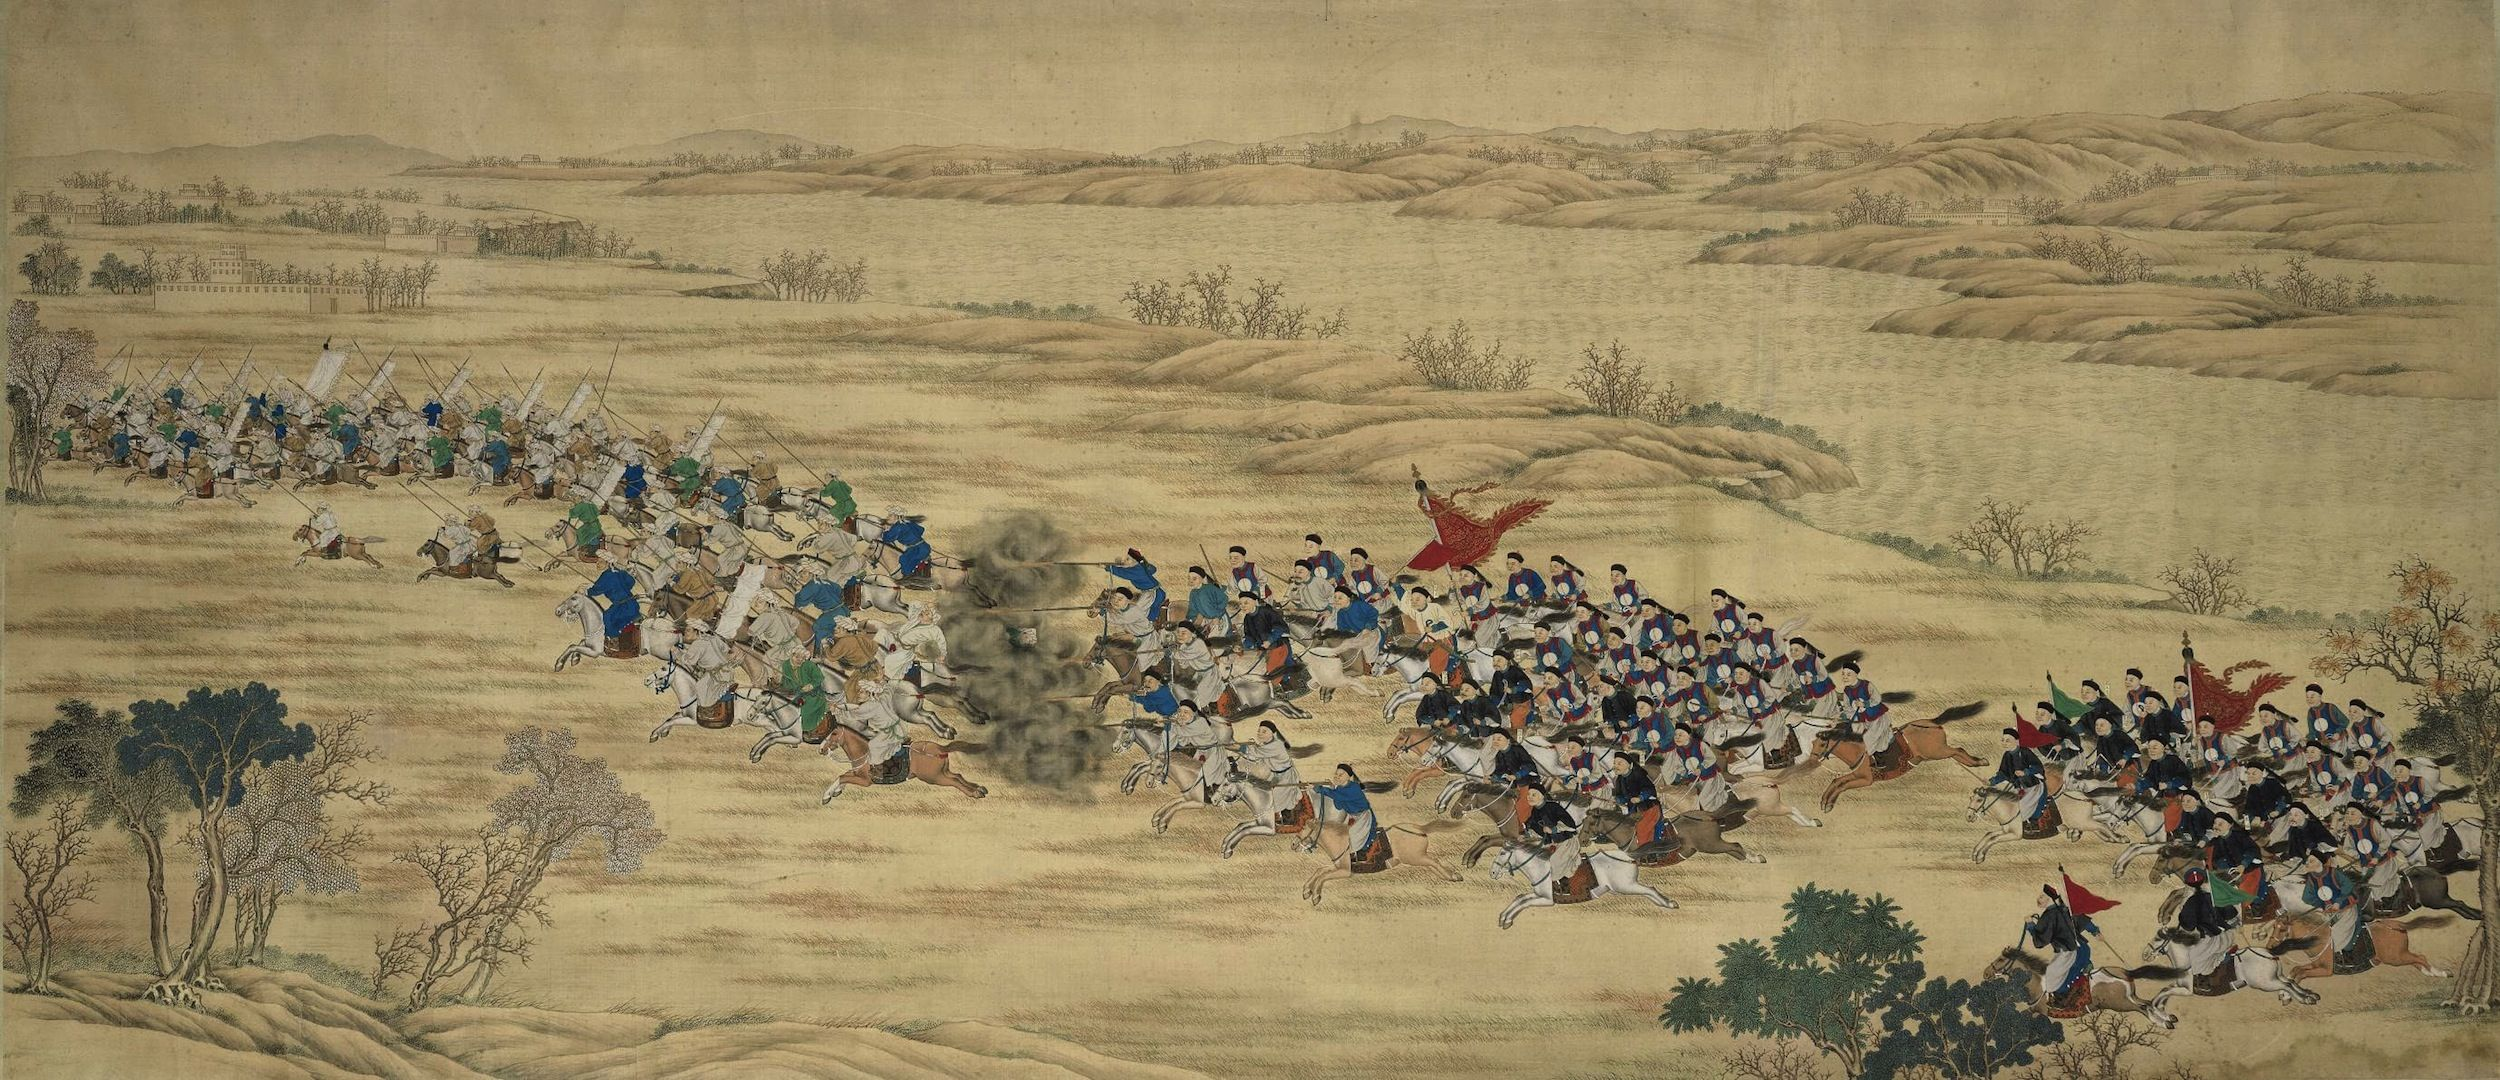 An Imperial Battle Painting from the Set of Seventeen Paintings Commemorating the Campaign Victories in the Northwestern Region, Qing Dynasty, Guangxu Period. (Pinterest)